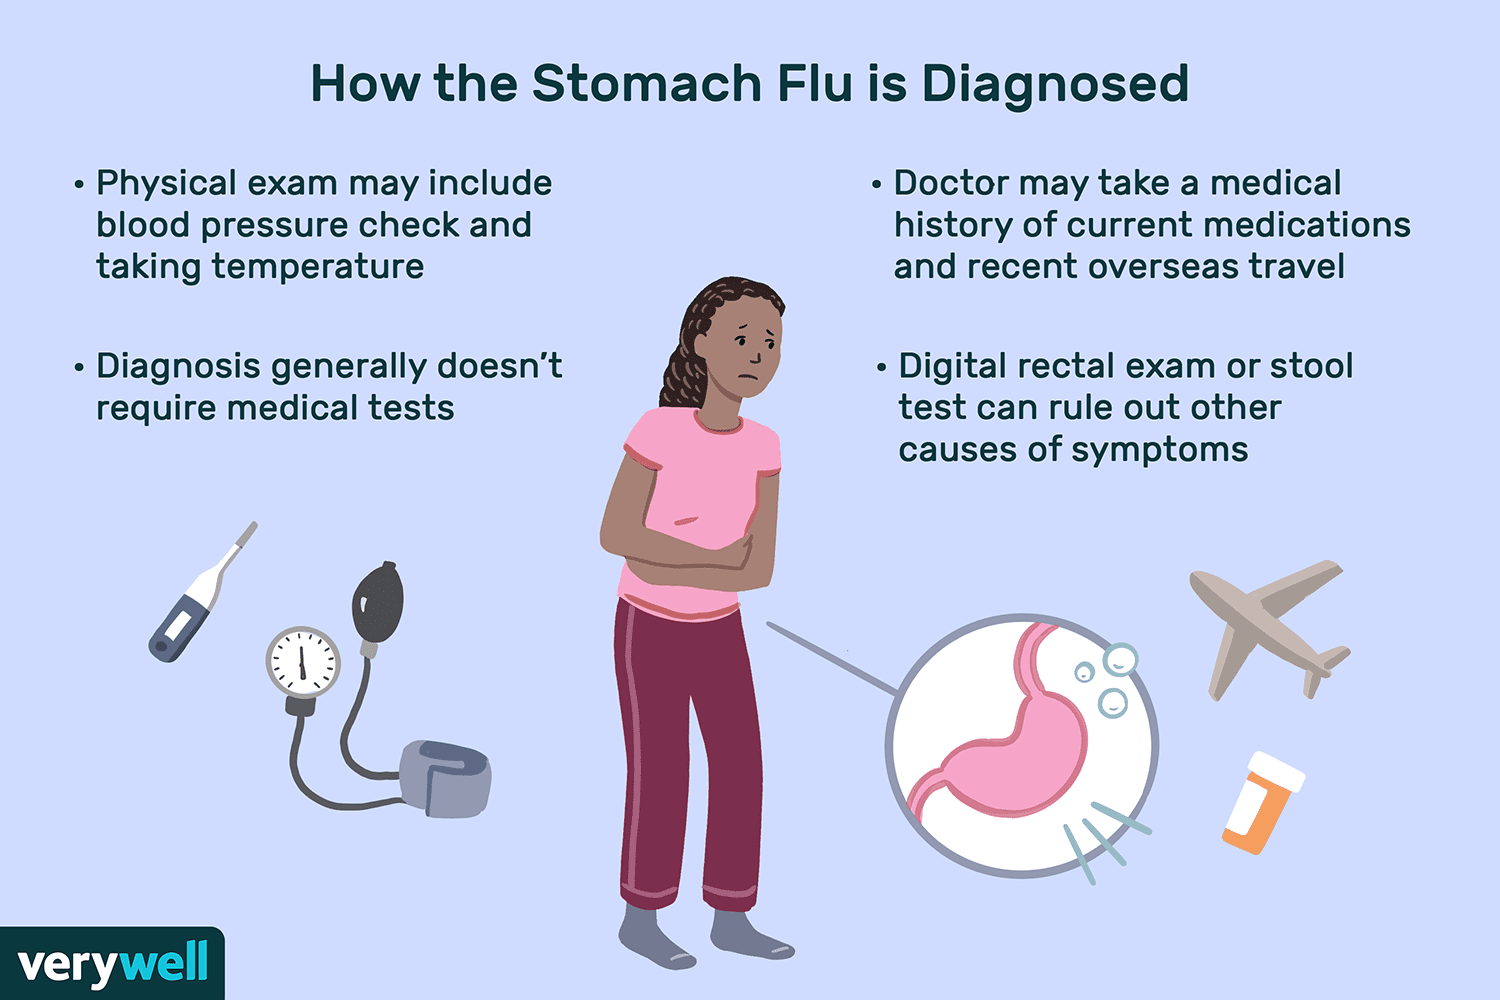 How The Stomach Flu Is Diagnosed